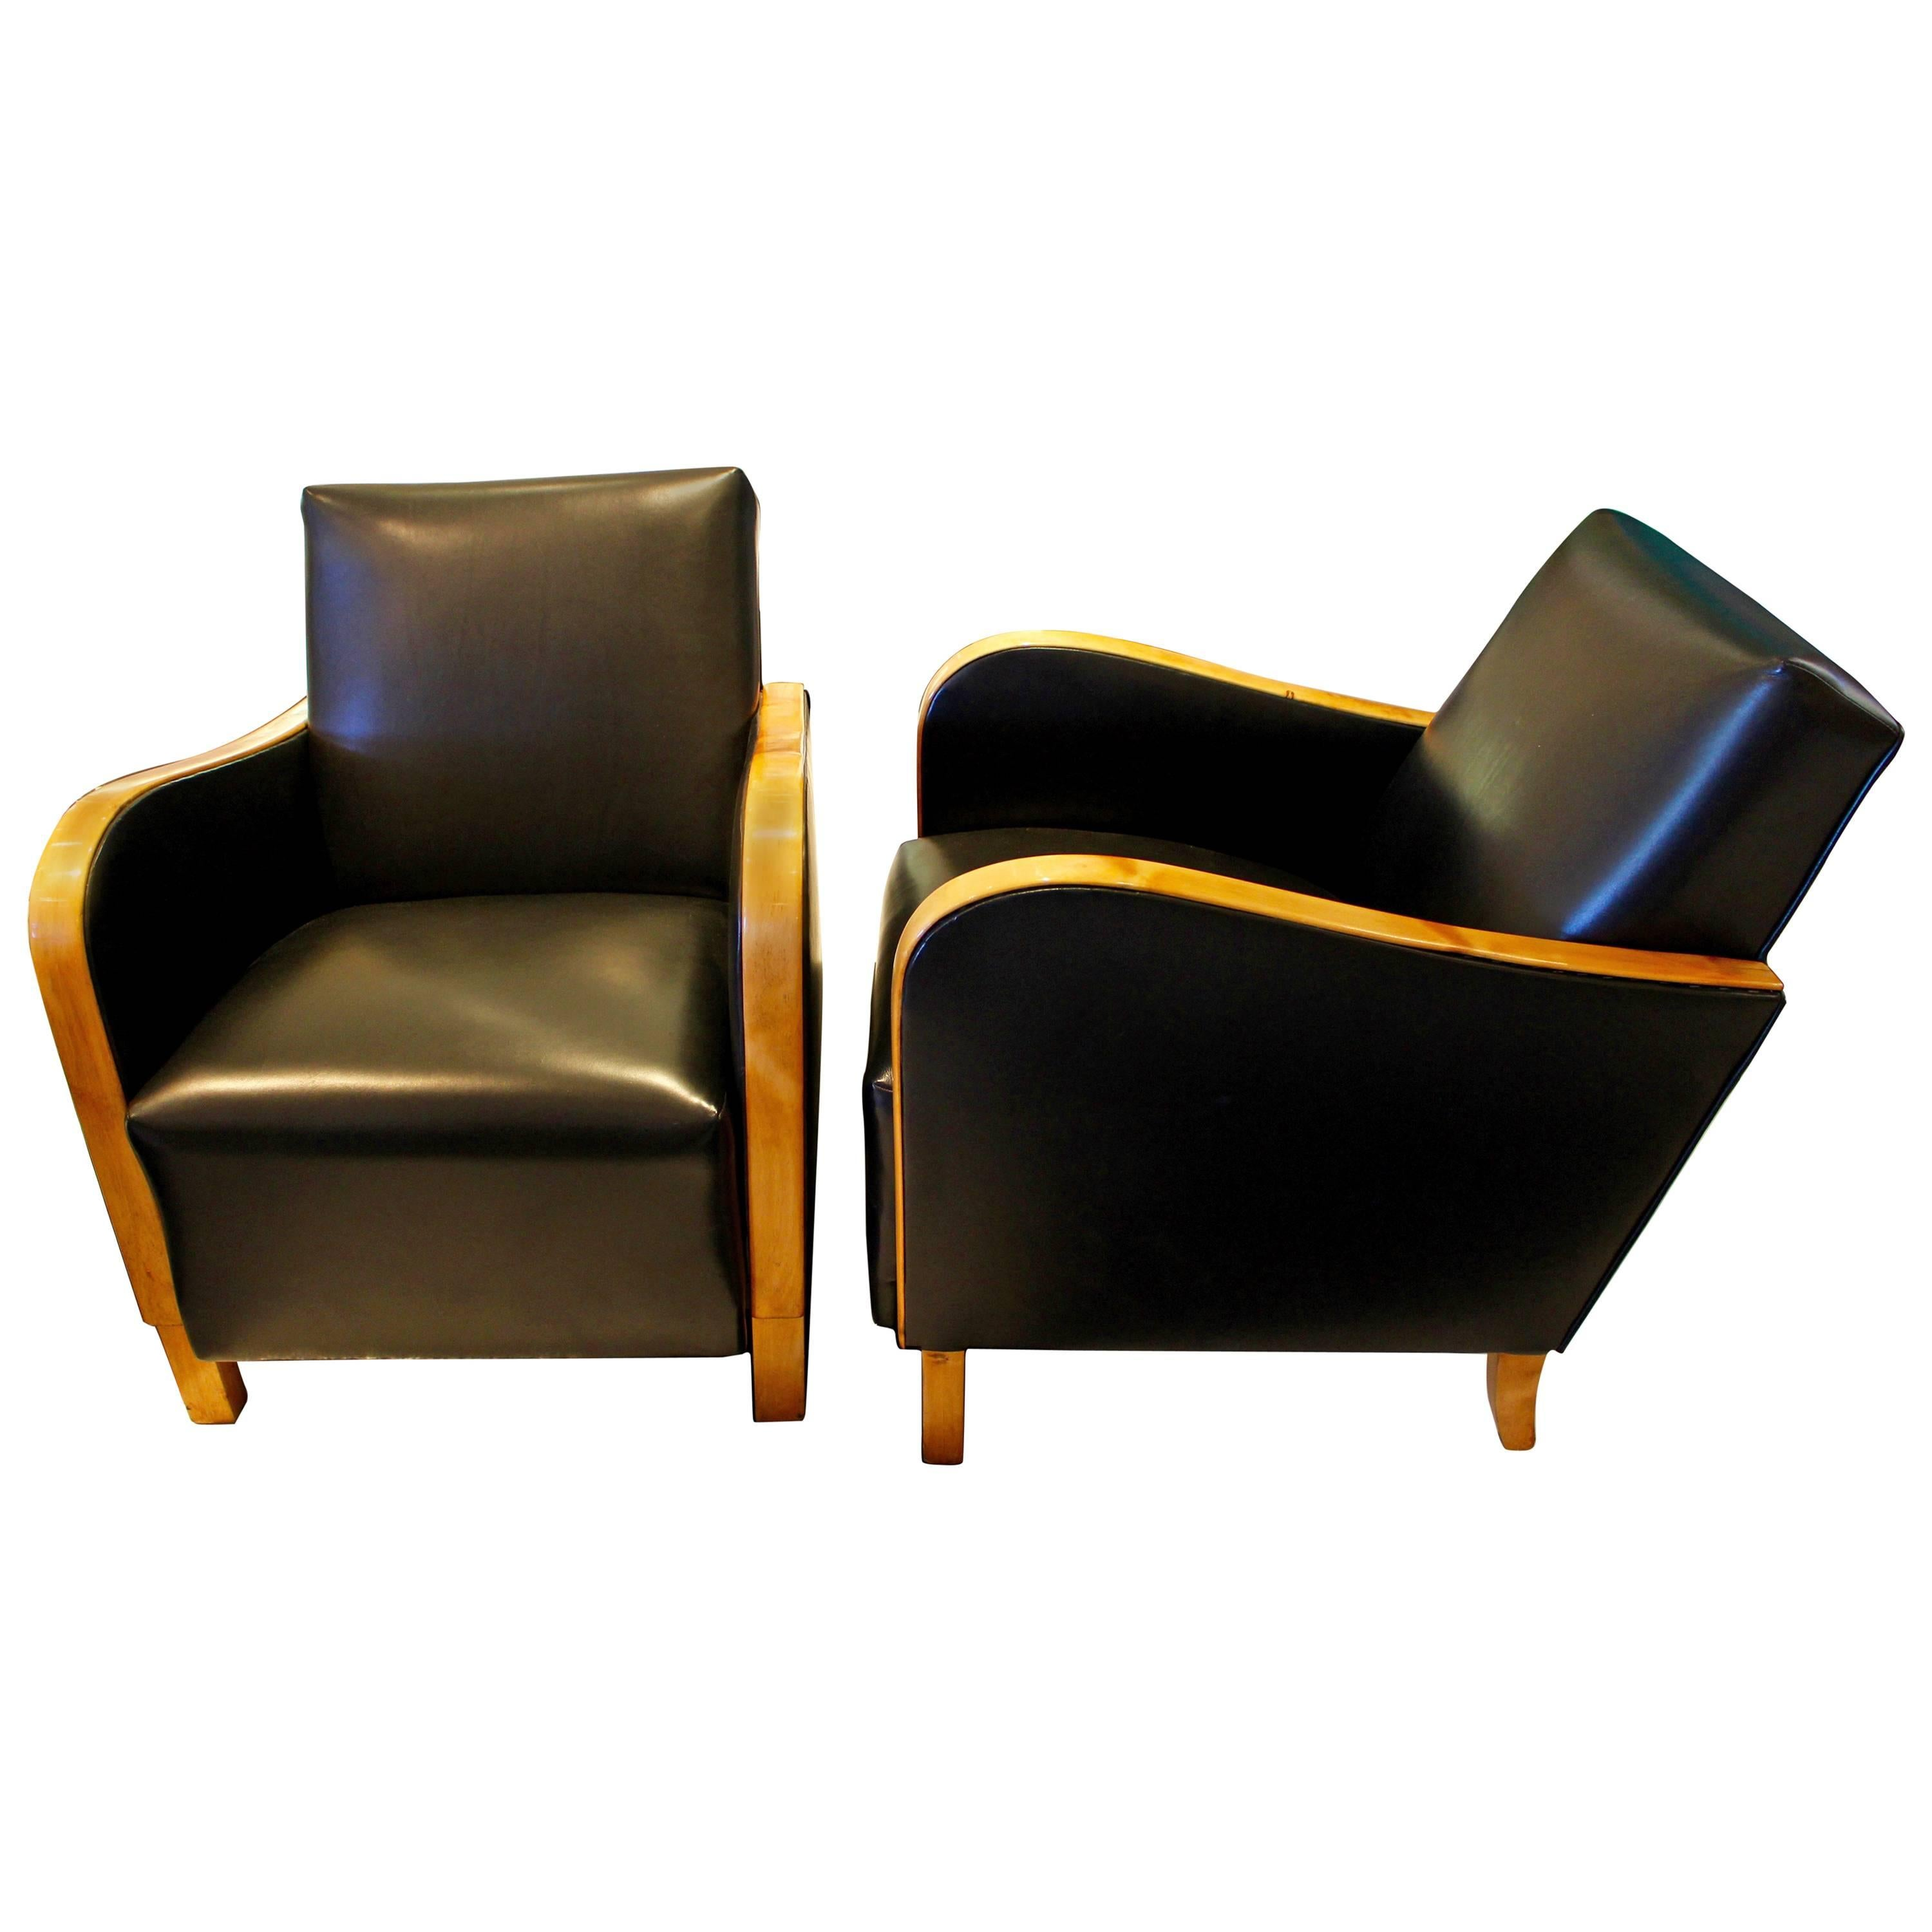 Pair of Swedish 1930s Black Leather Art Deco Club Chairs with Bentwood Frame